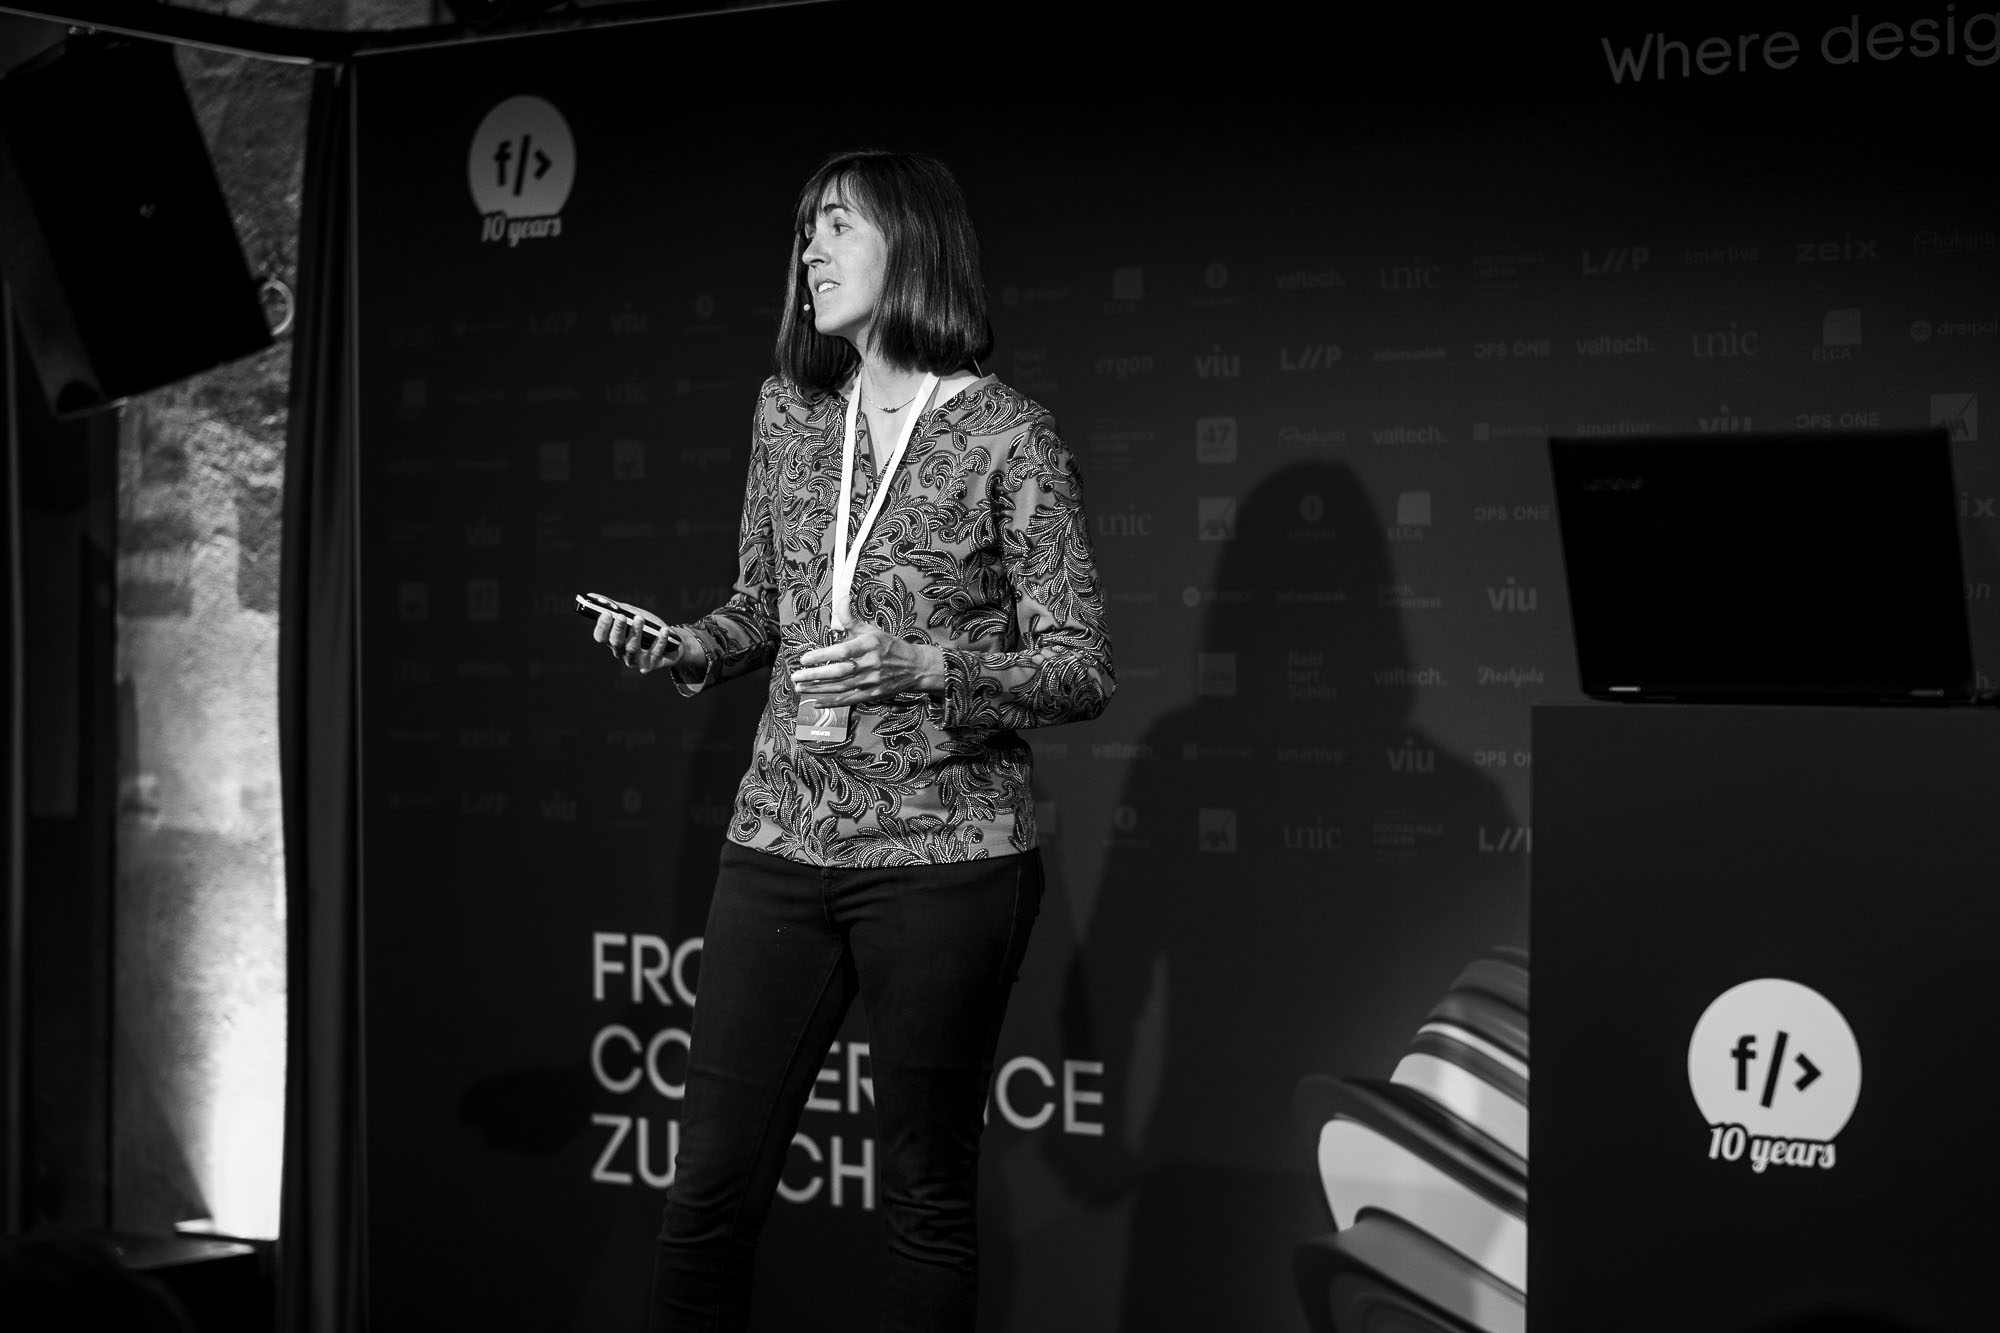 Angela Trego on stage at Front Conference 2021